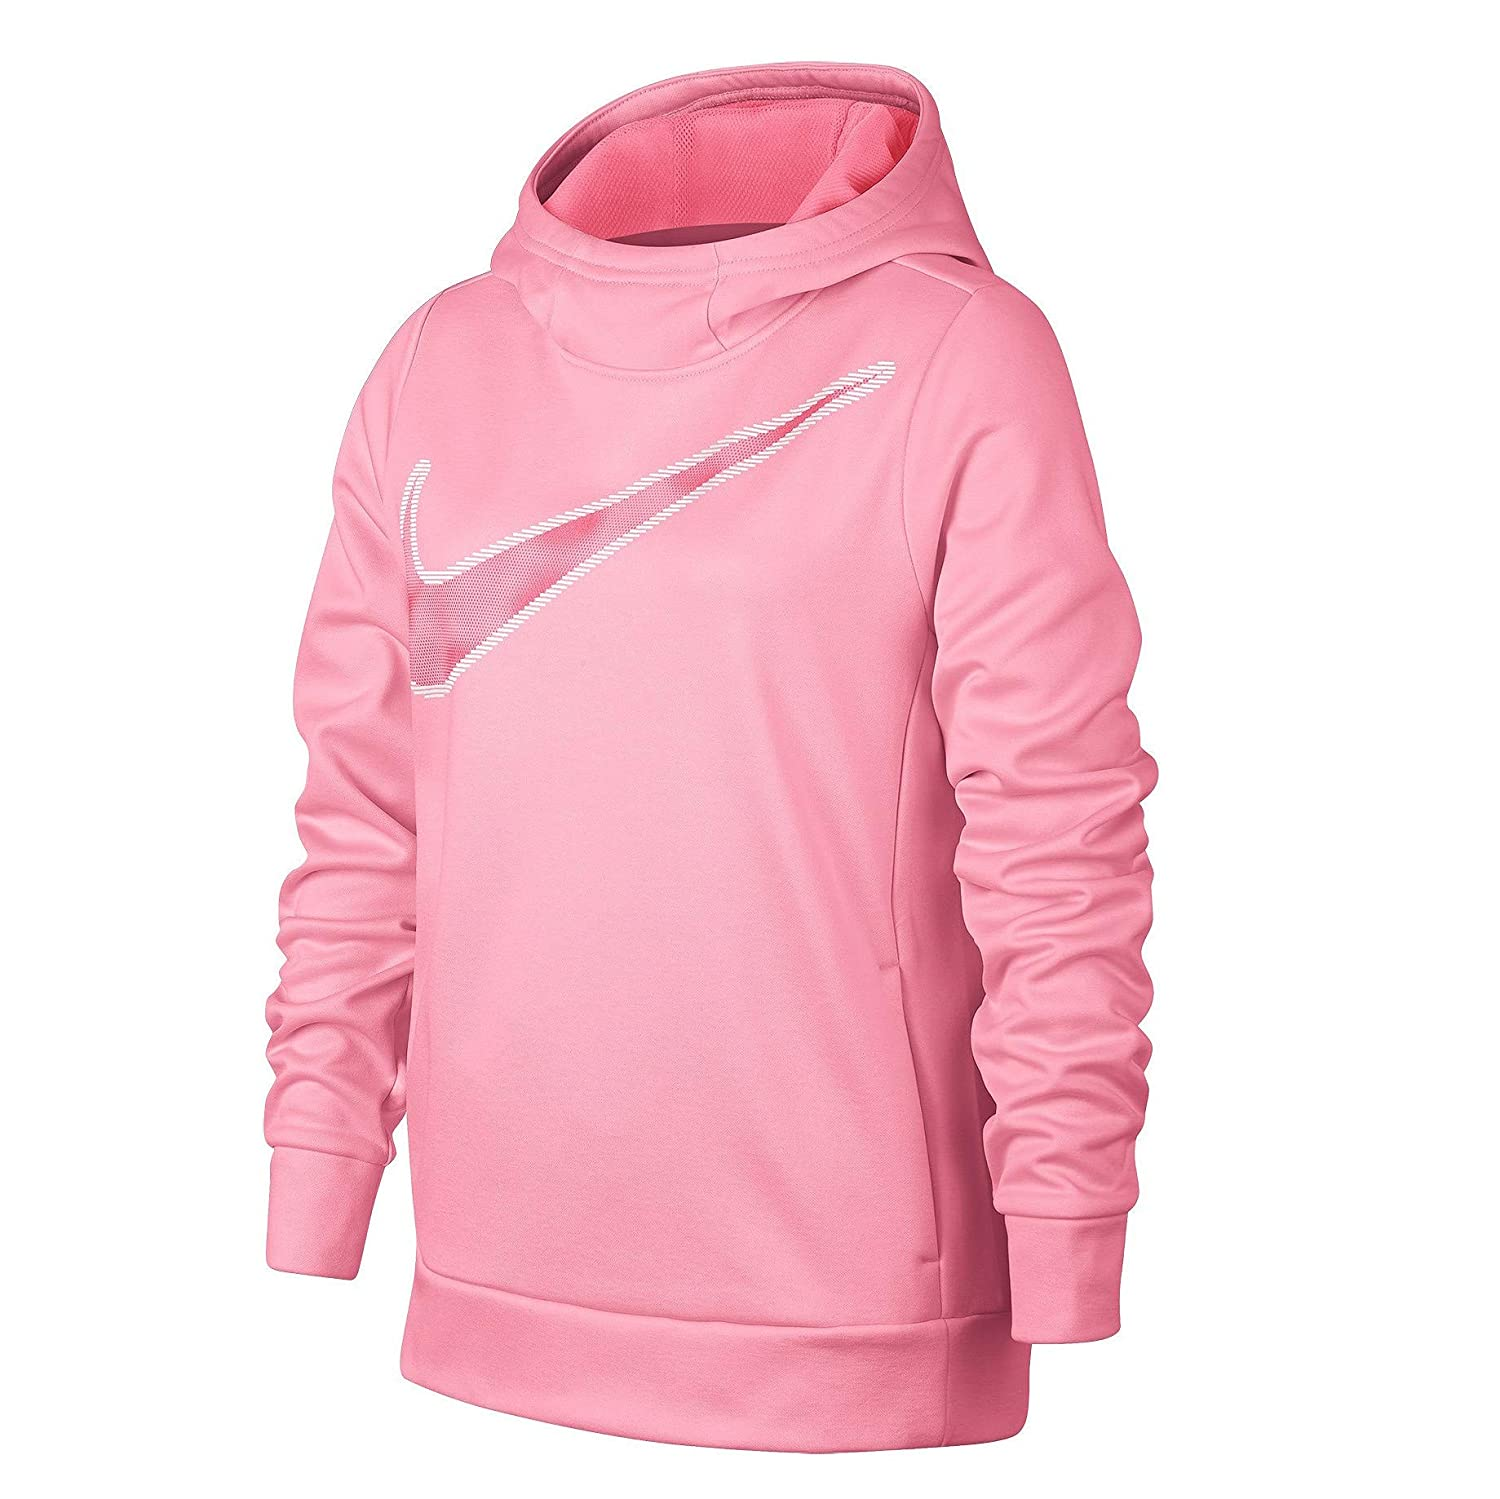 4e5e87a32 Amazon.com  Nike Girls  Swoosh Thermal Pullover Sweatshirt Hoodie  Clothing